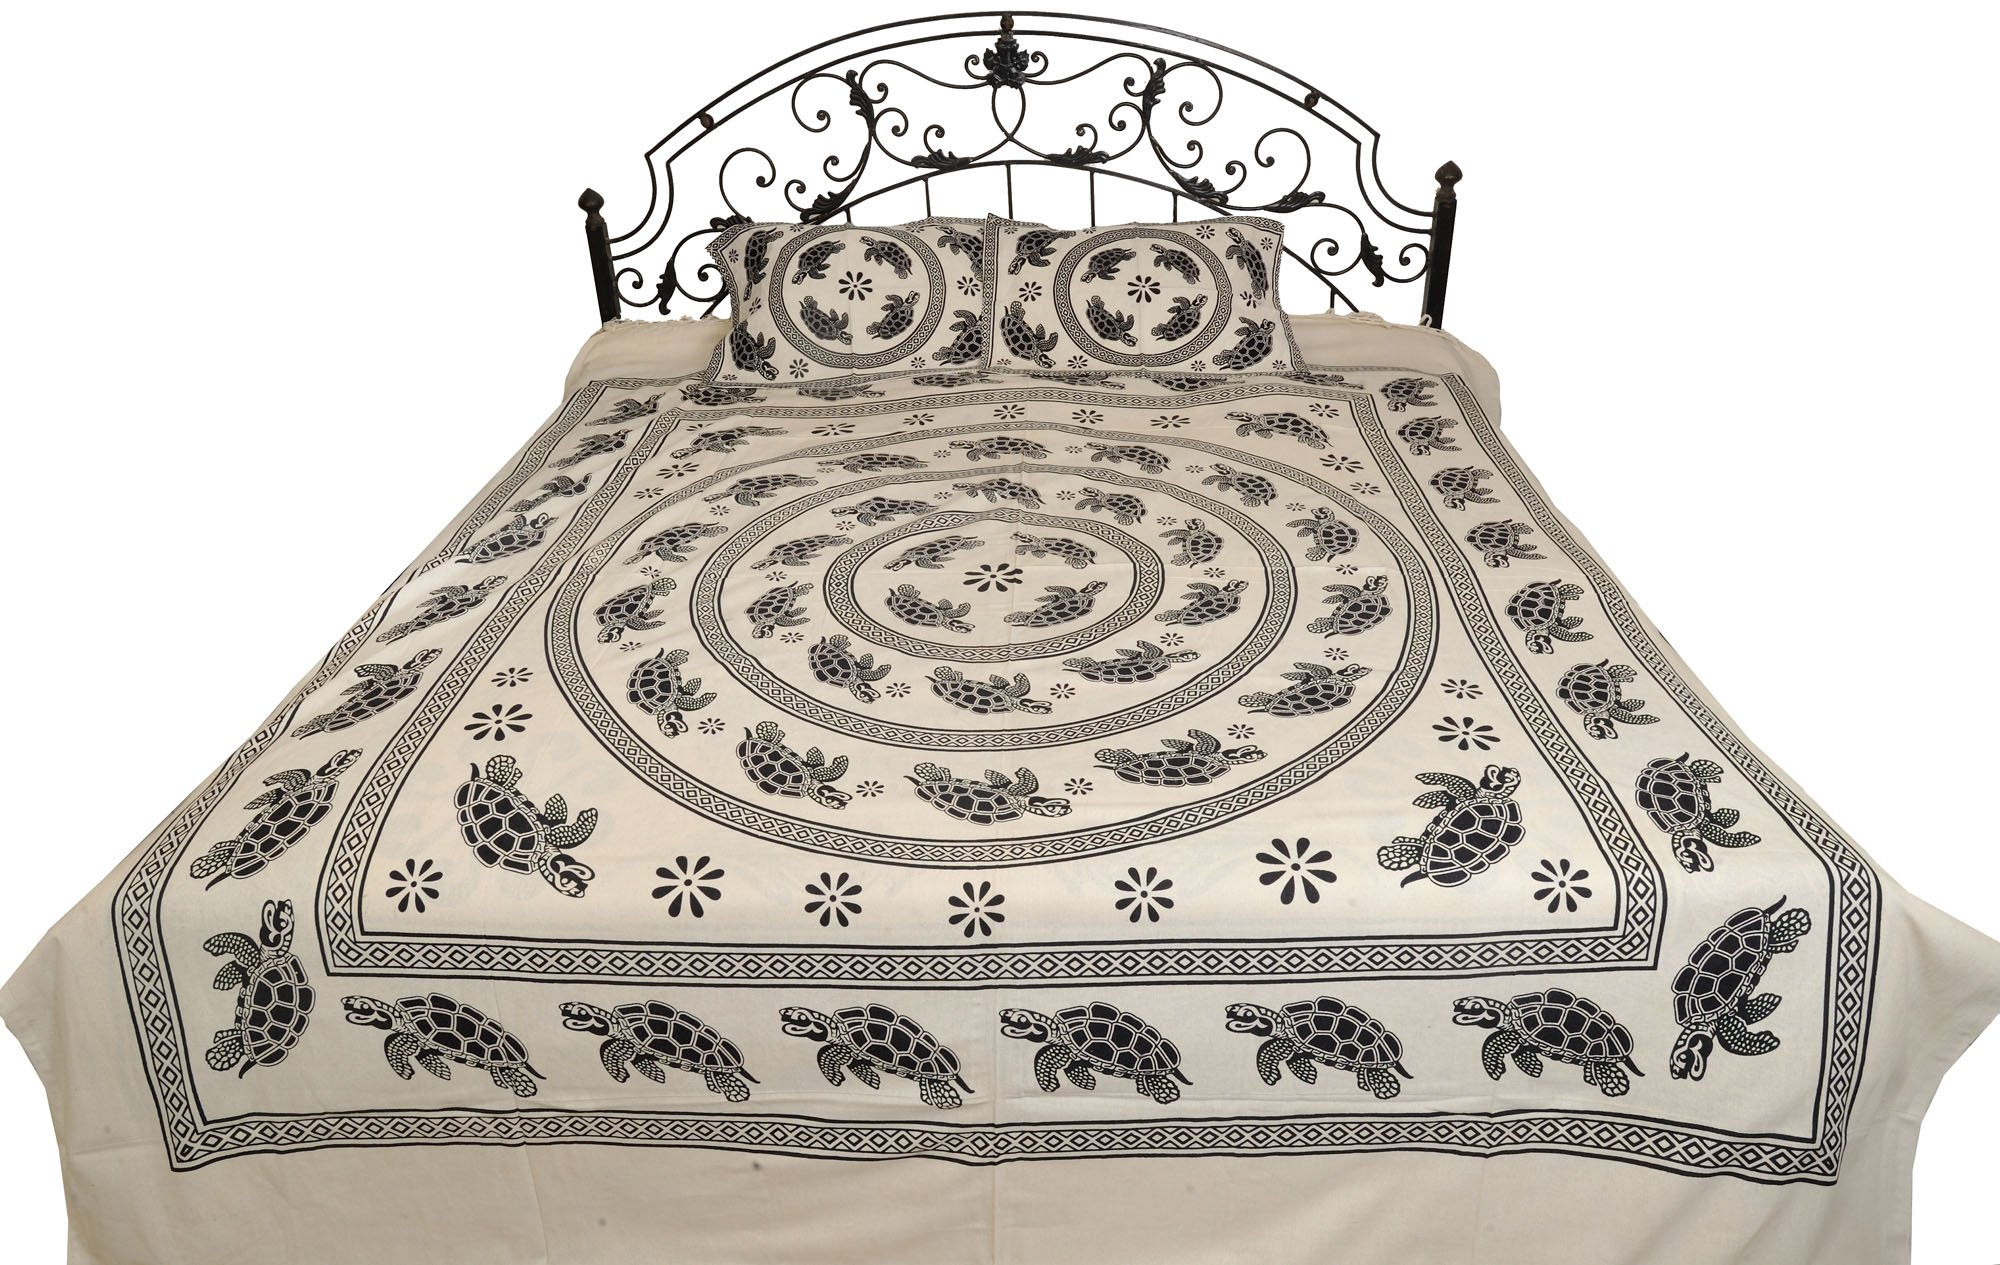 White and Black Vastu Bedsheet with Printed Mandala of Tortoises - Pure Cotton with Pillow Covers